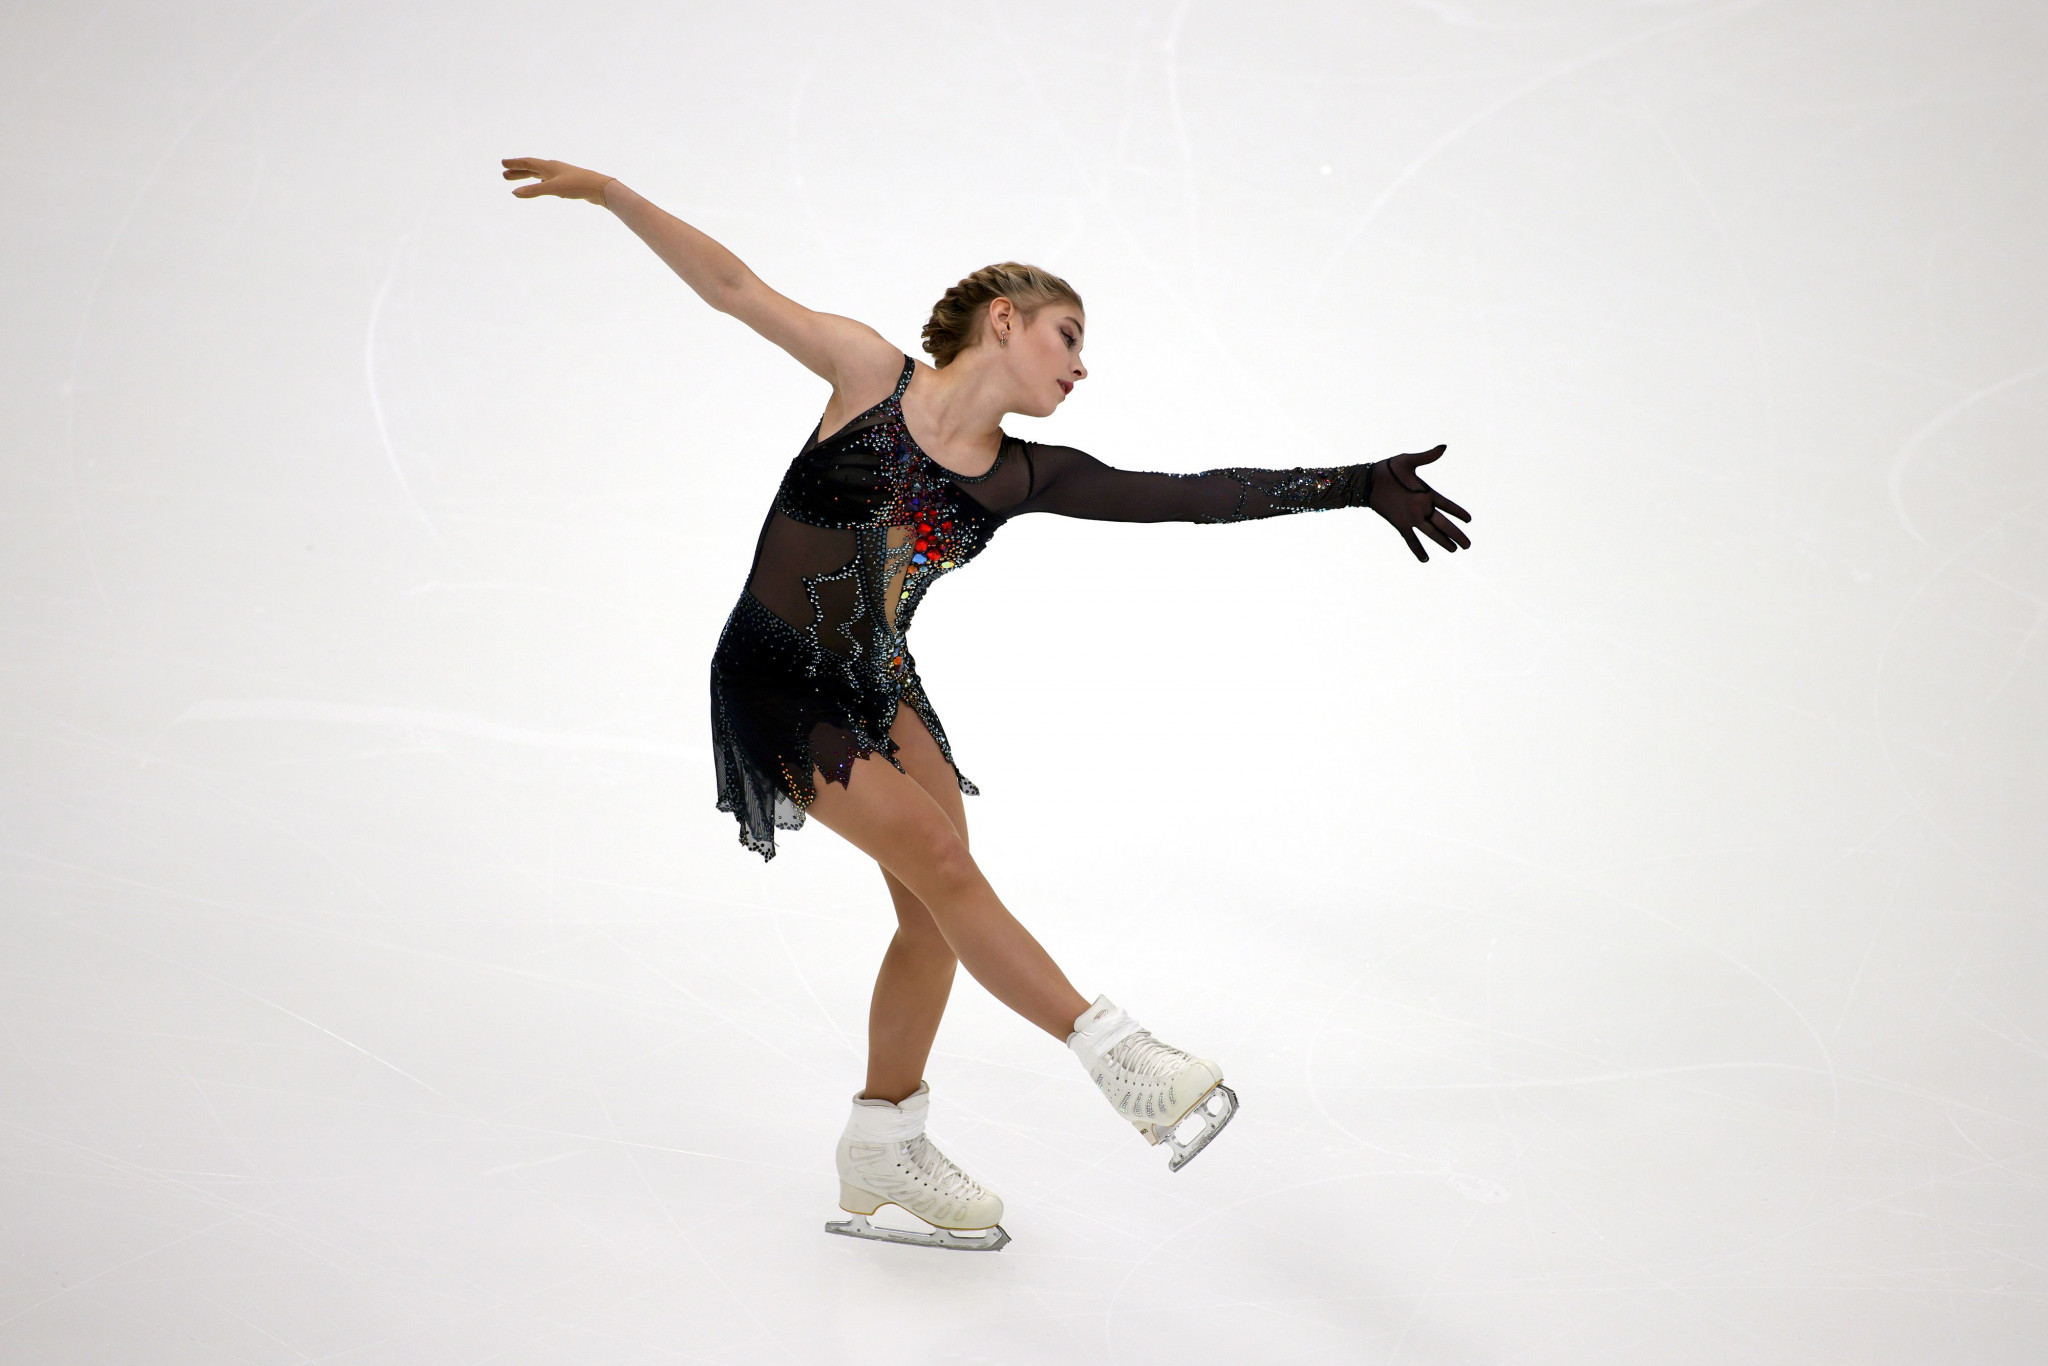 Russian figure skater Kostornaia returns to former coach Tutberidze